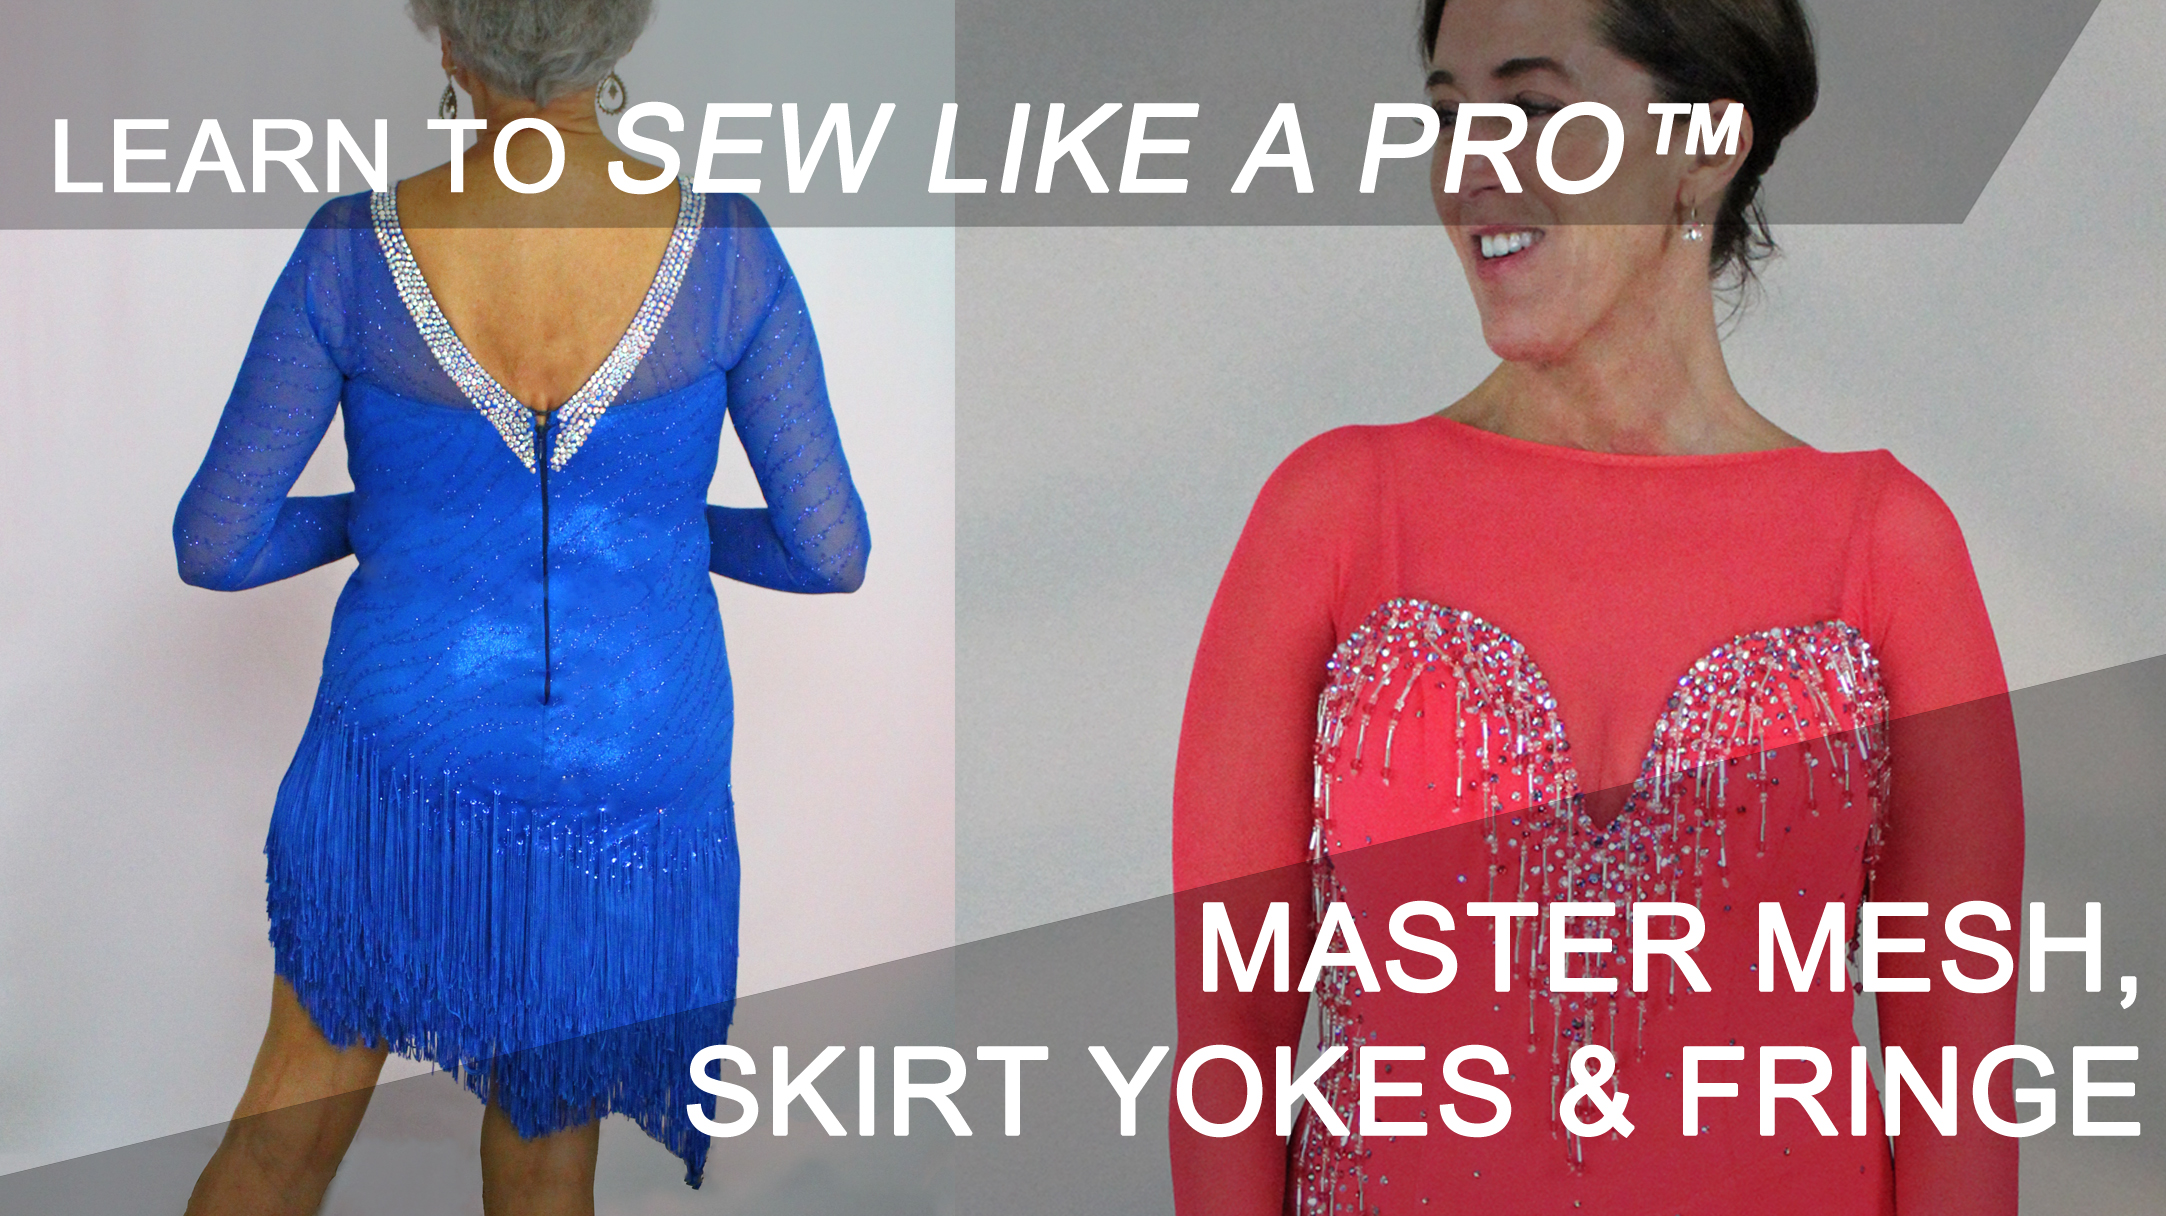 Learn to sew mesh, skirt yokes, fringe